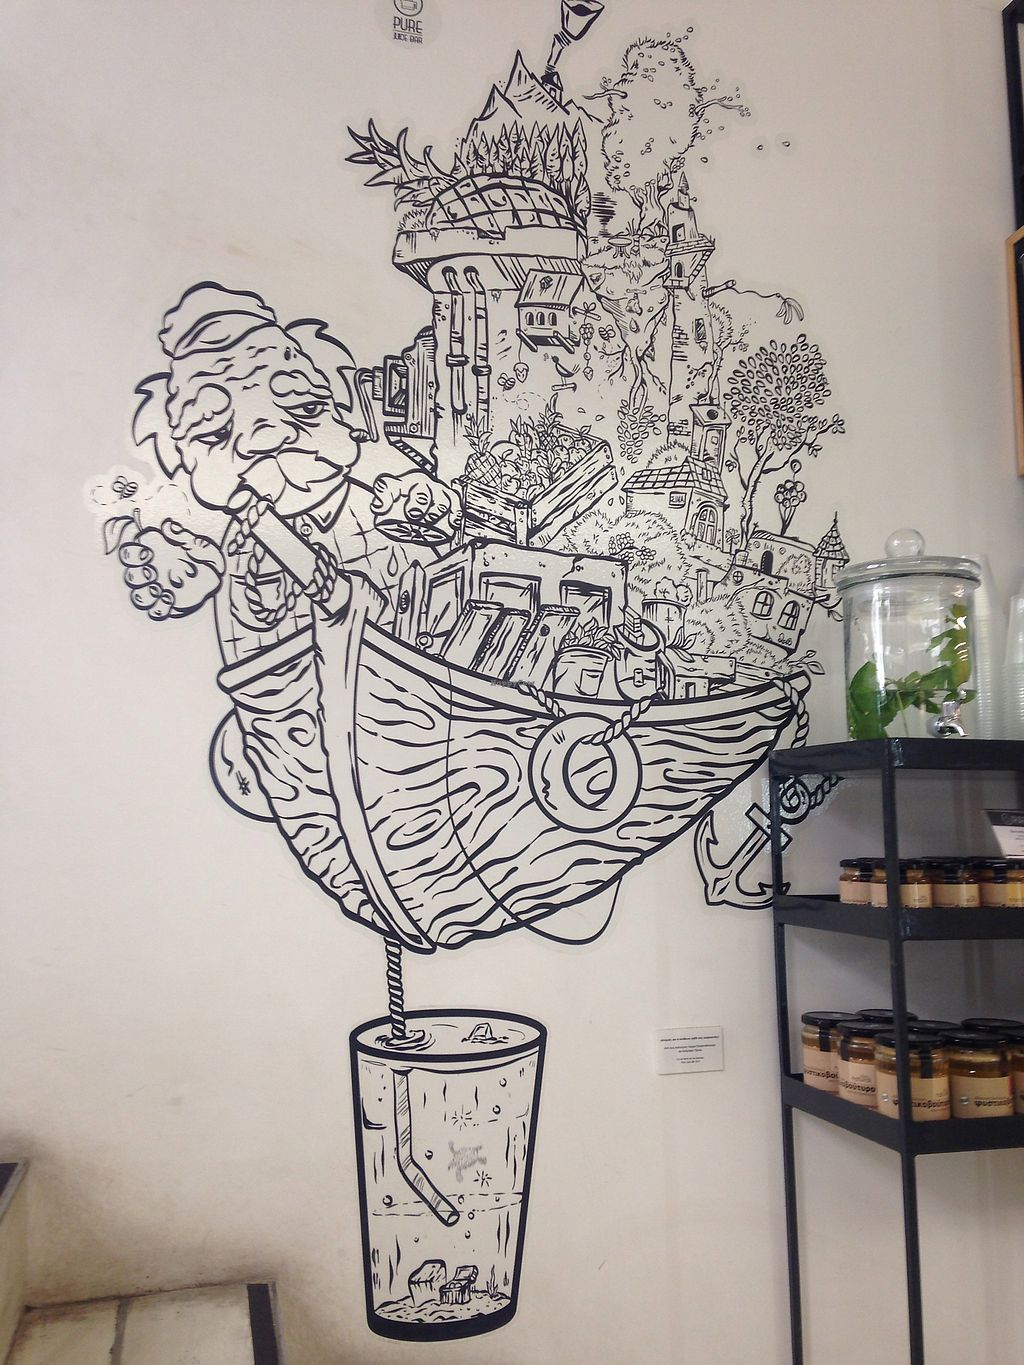 """Photo of PURE Juice Bar  by <a href=""""/members/profile/Yian"""">Yian</a> <br/>Great piece on the wall on the left as you enter  <br/> August 8, 2017  - <a href='/contact/abuse/image/57816/290461'>Report</a>"""